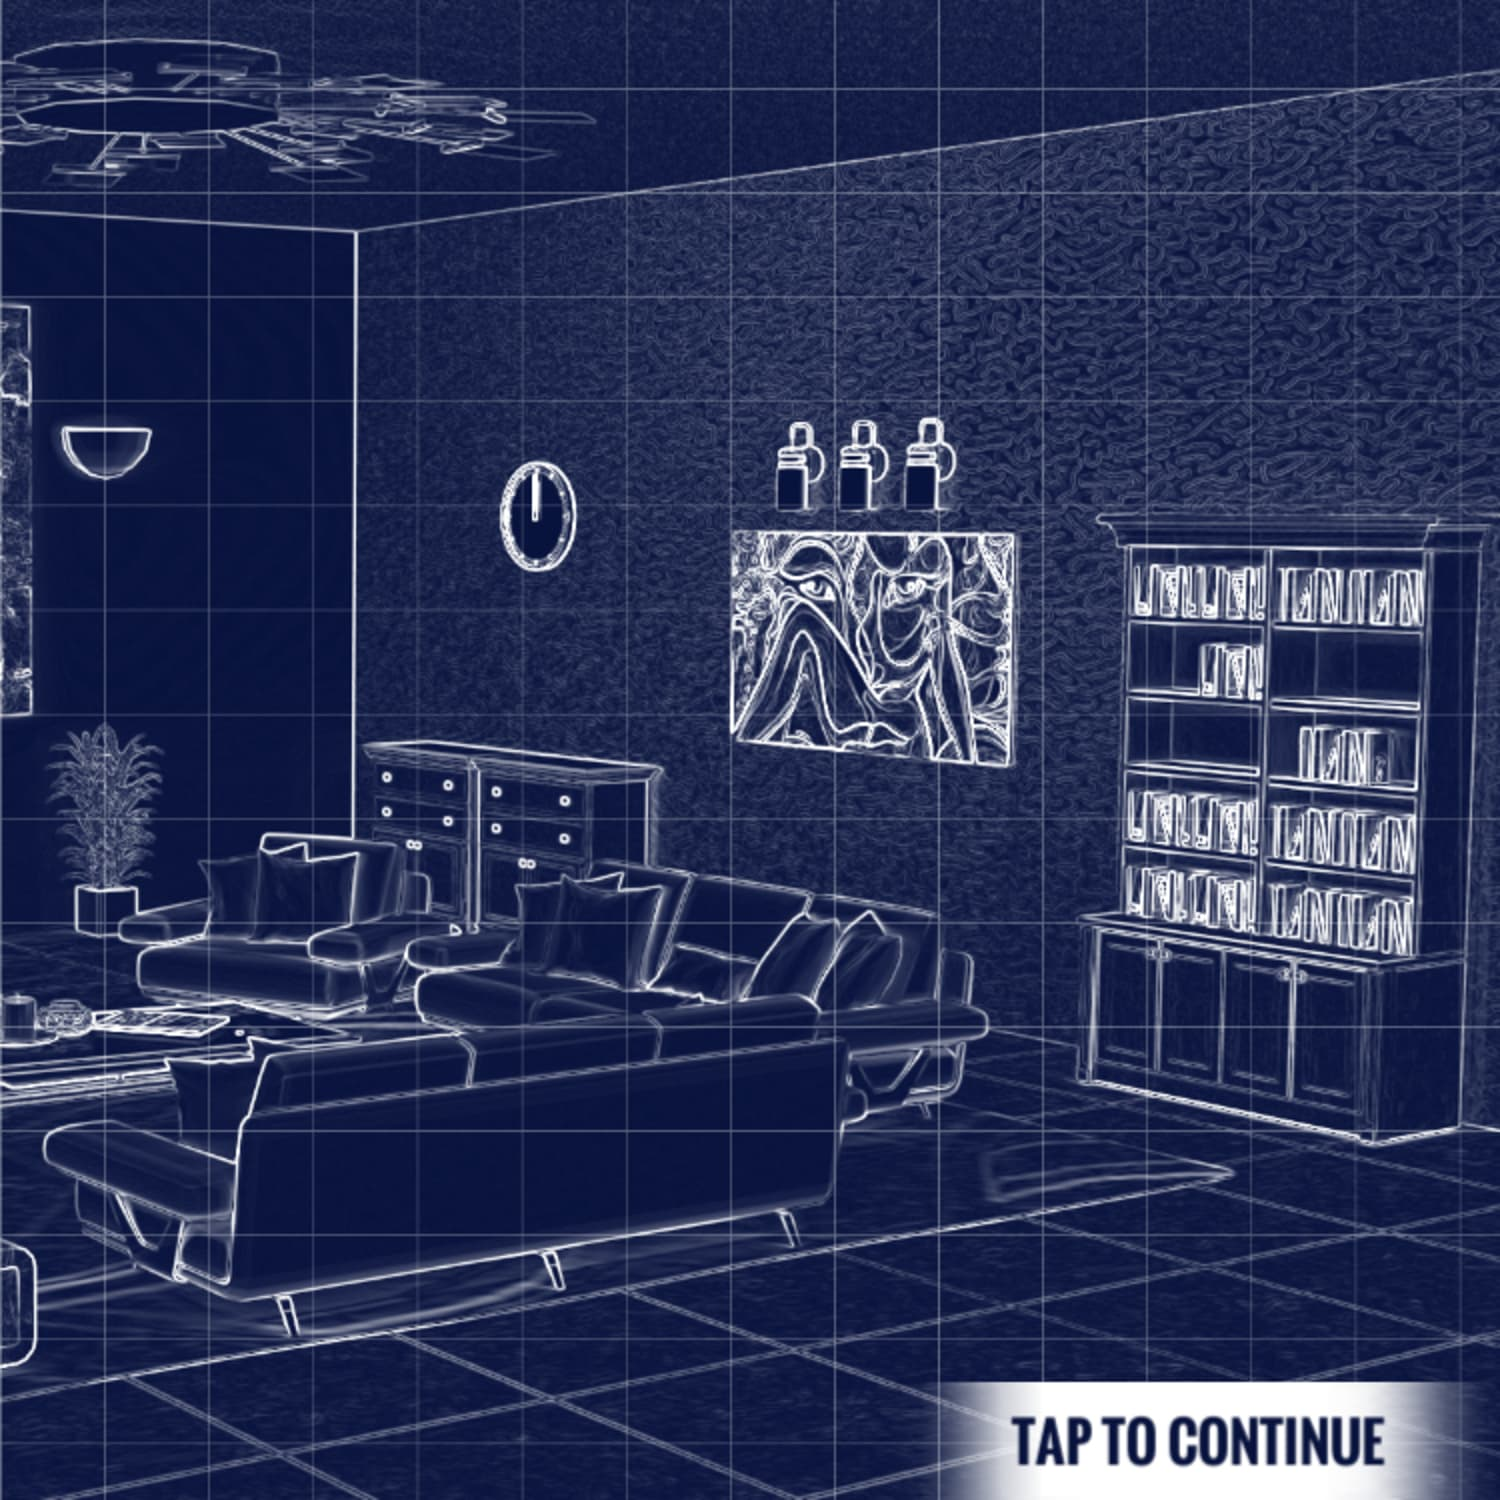 5 Fun Interior Design Games For Your Phone Or Laptop Apartment Therapy